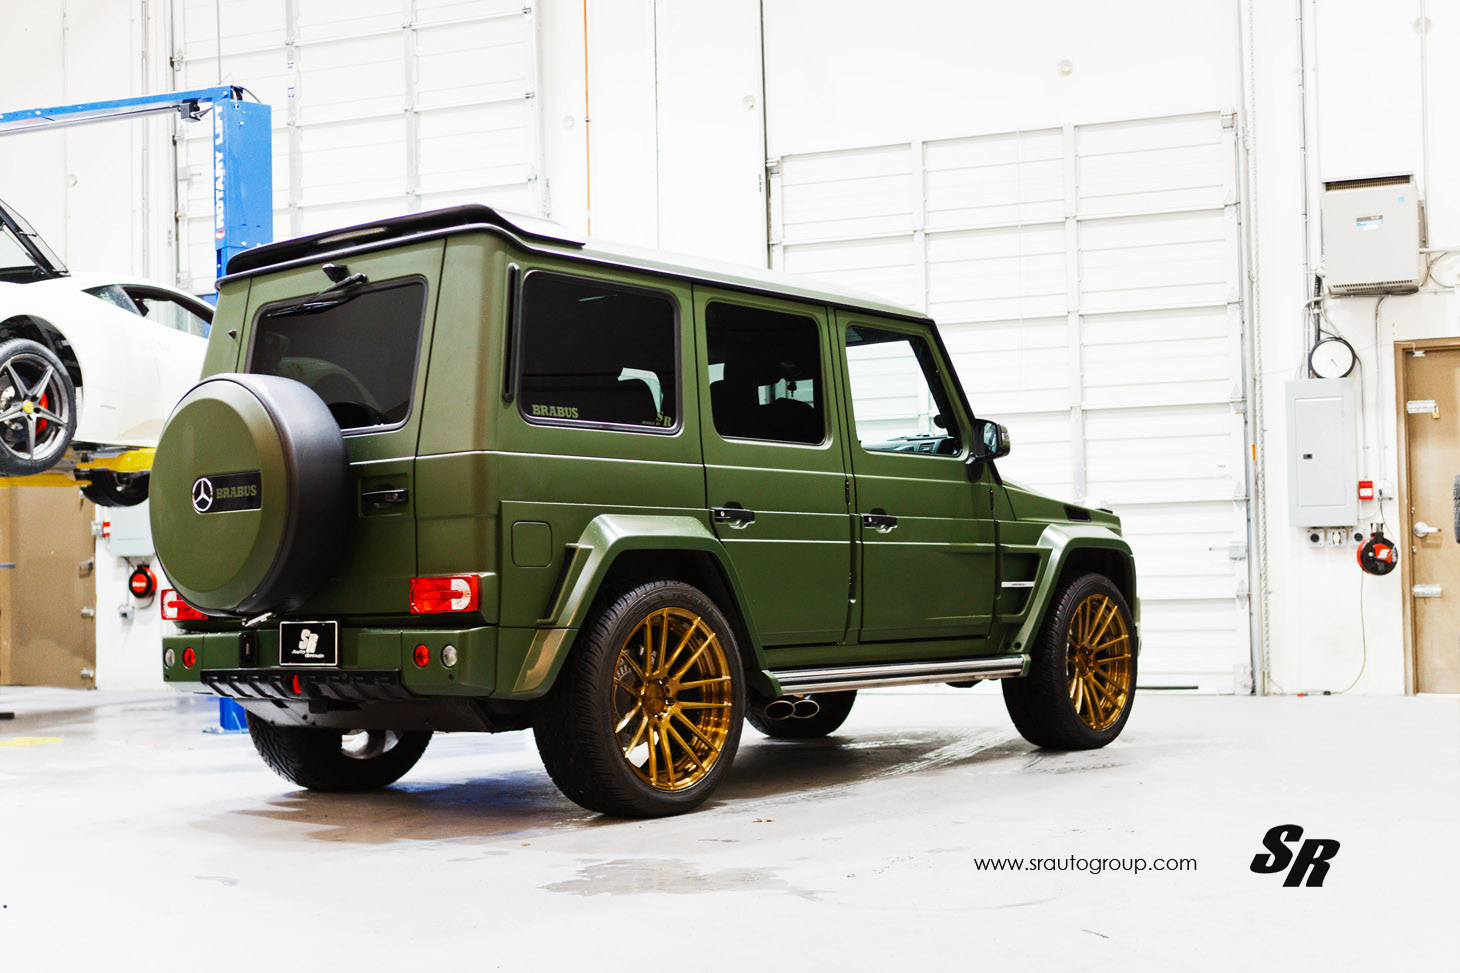 Brabus Mercedes Benz Amg G63 Gets Military Green Exterior